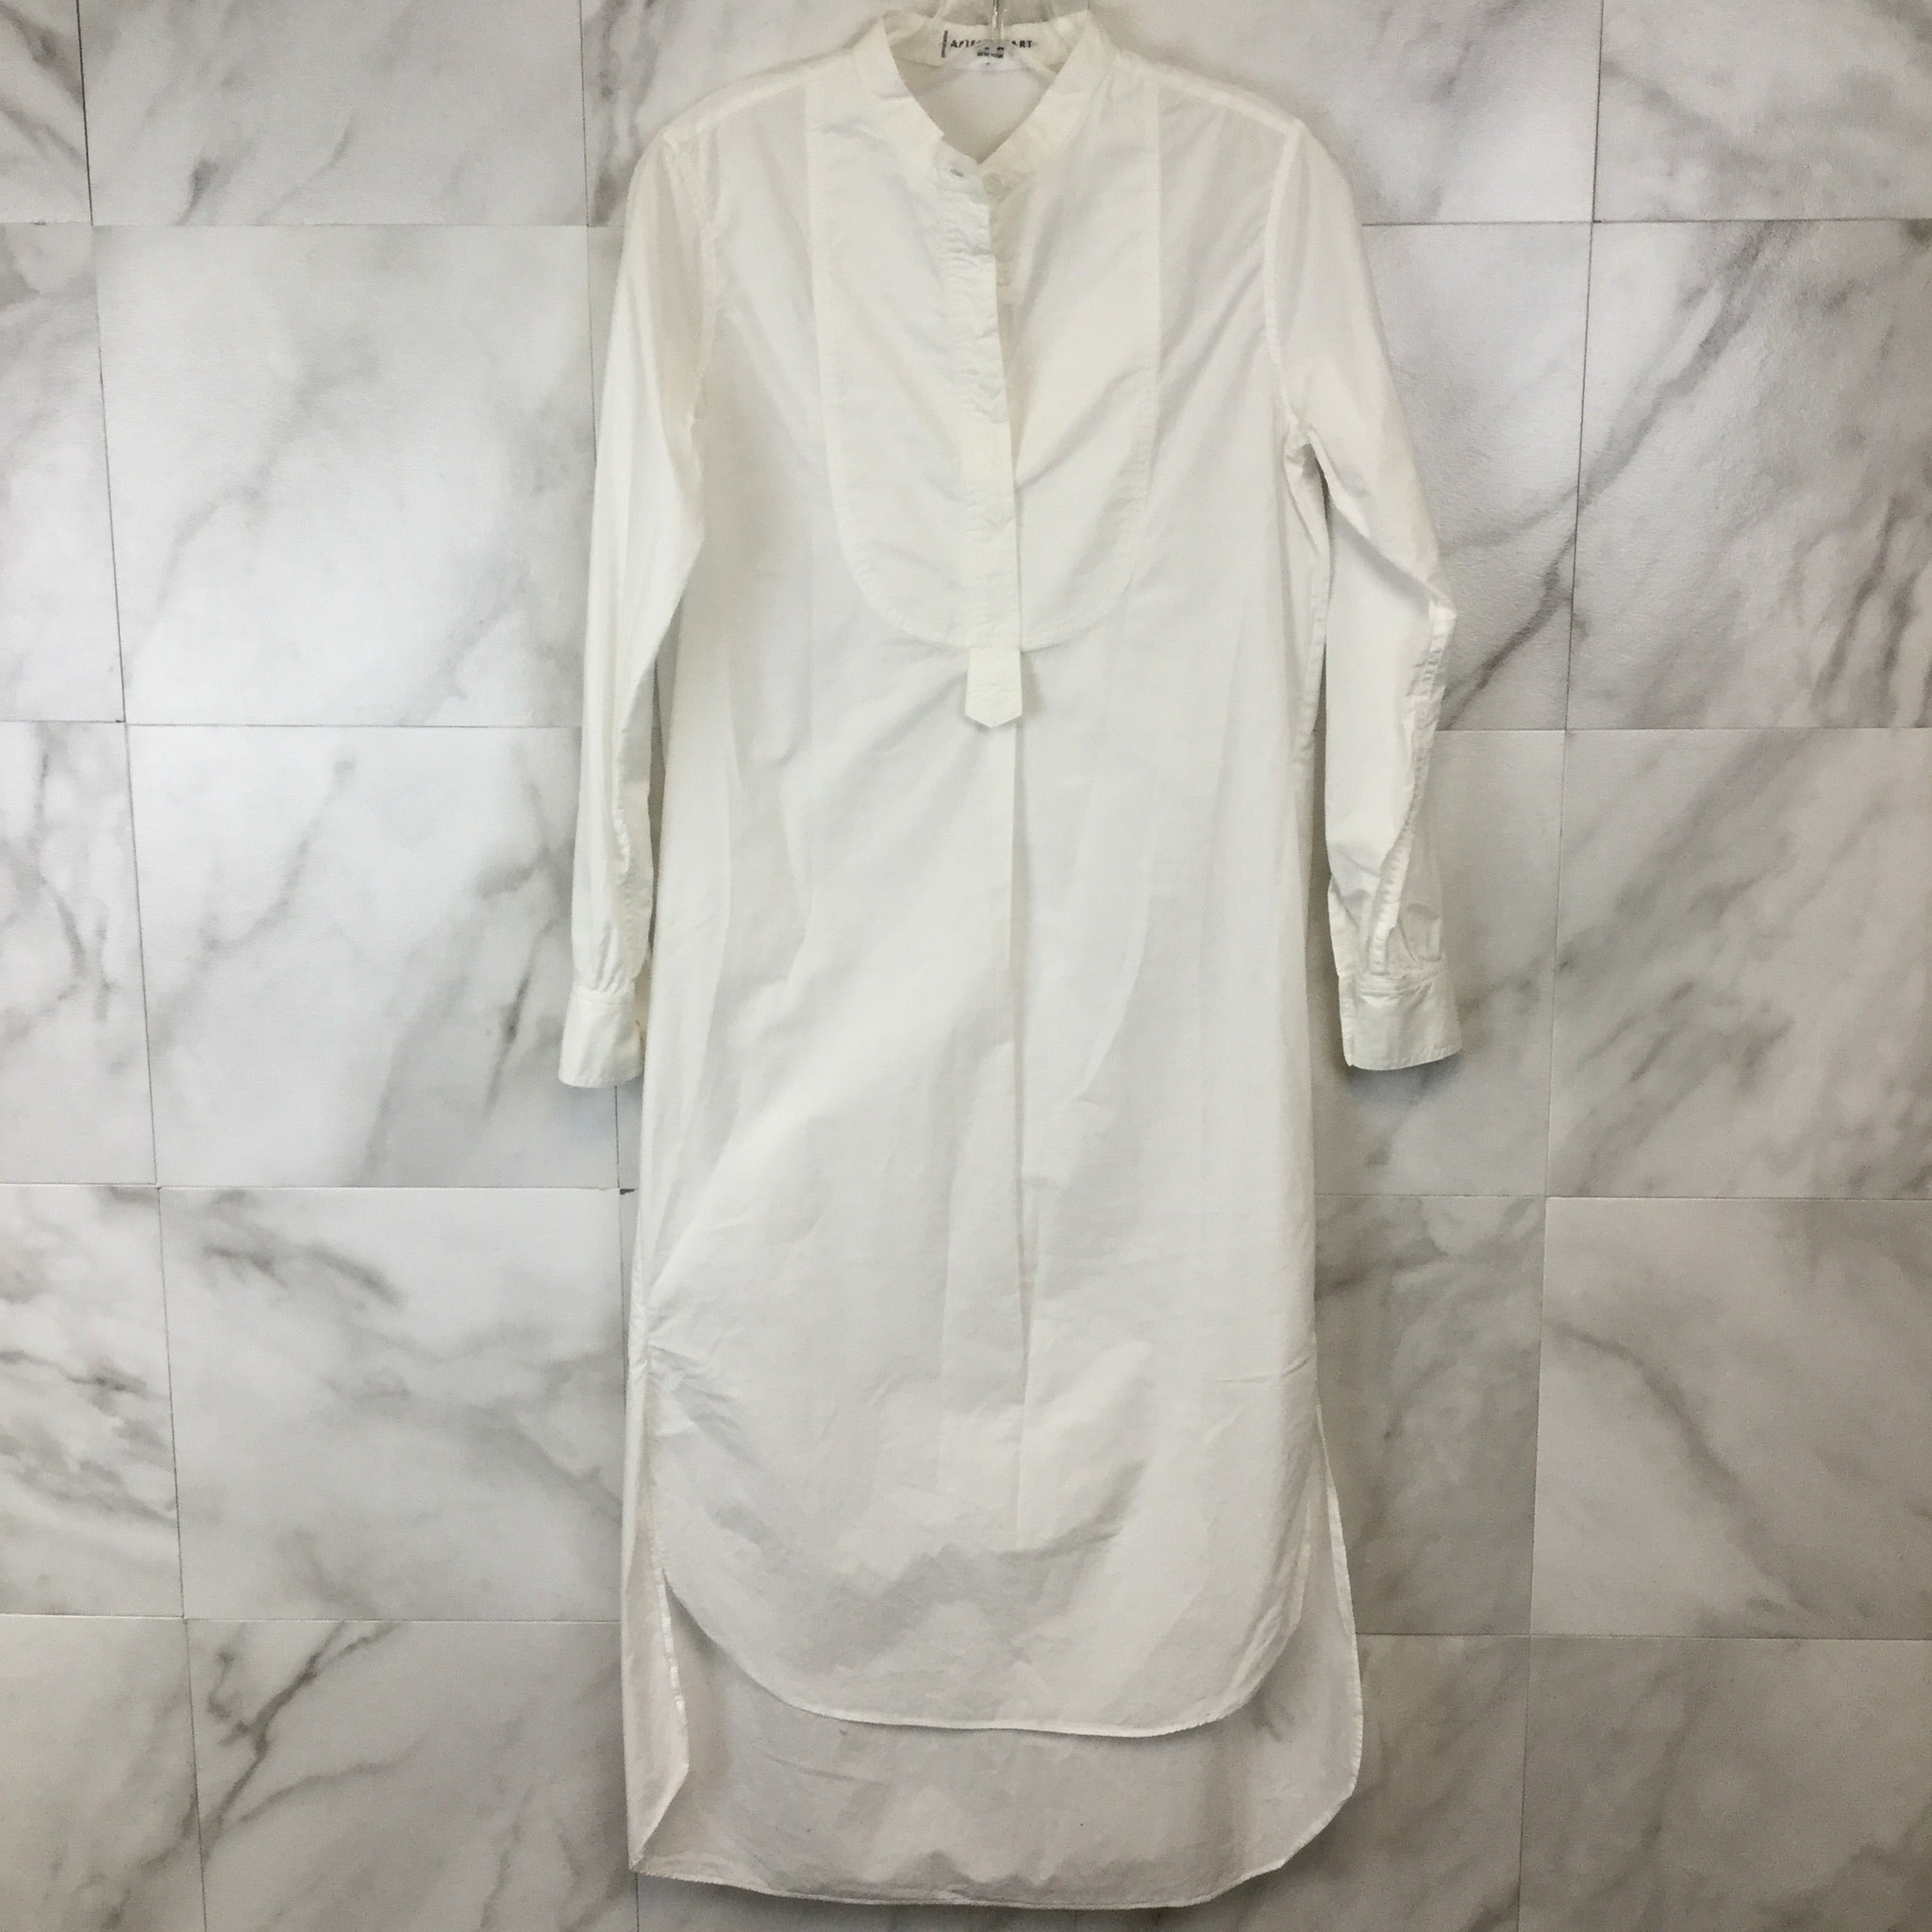 Apiece Apart Samara Shirtdress - size 2